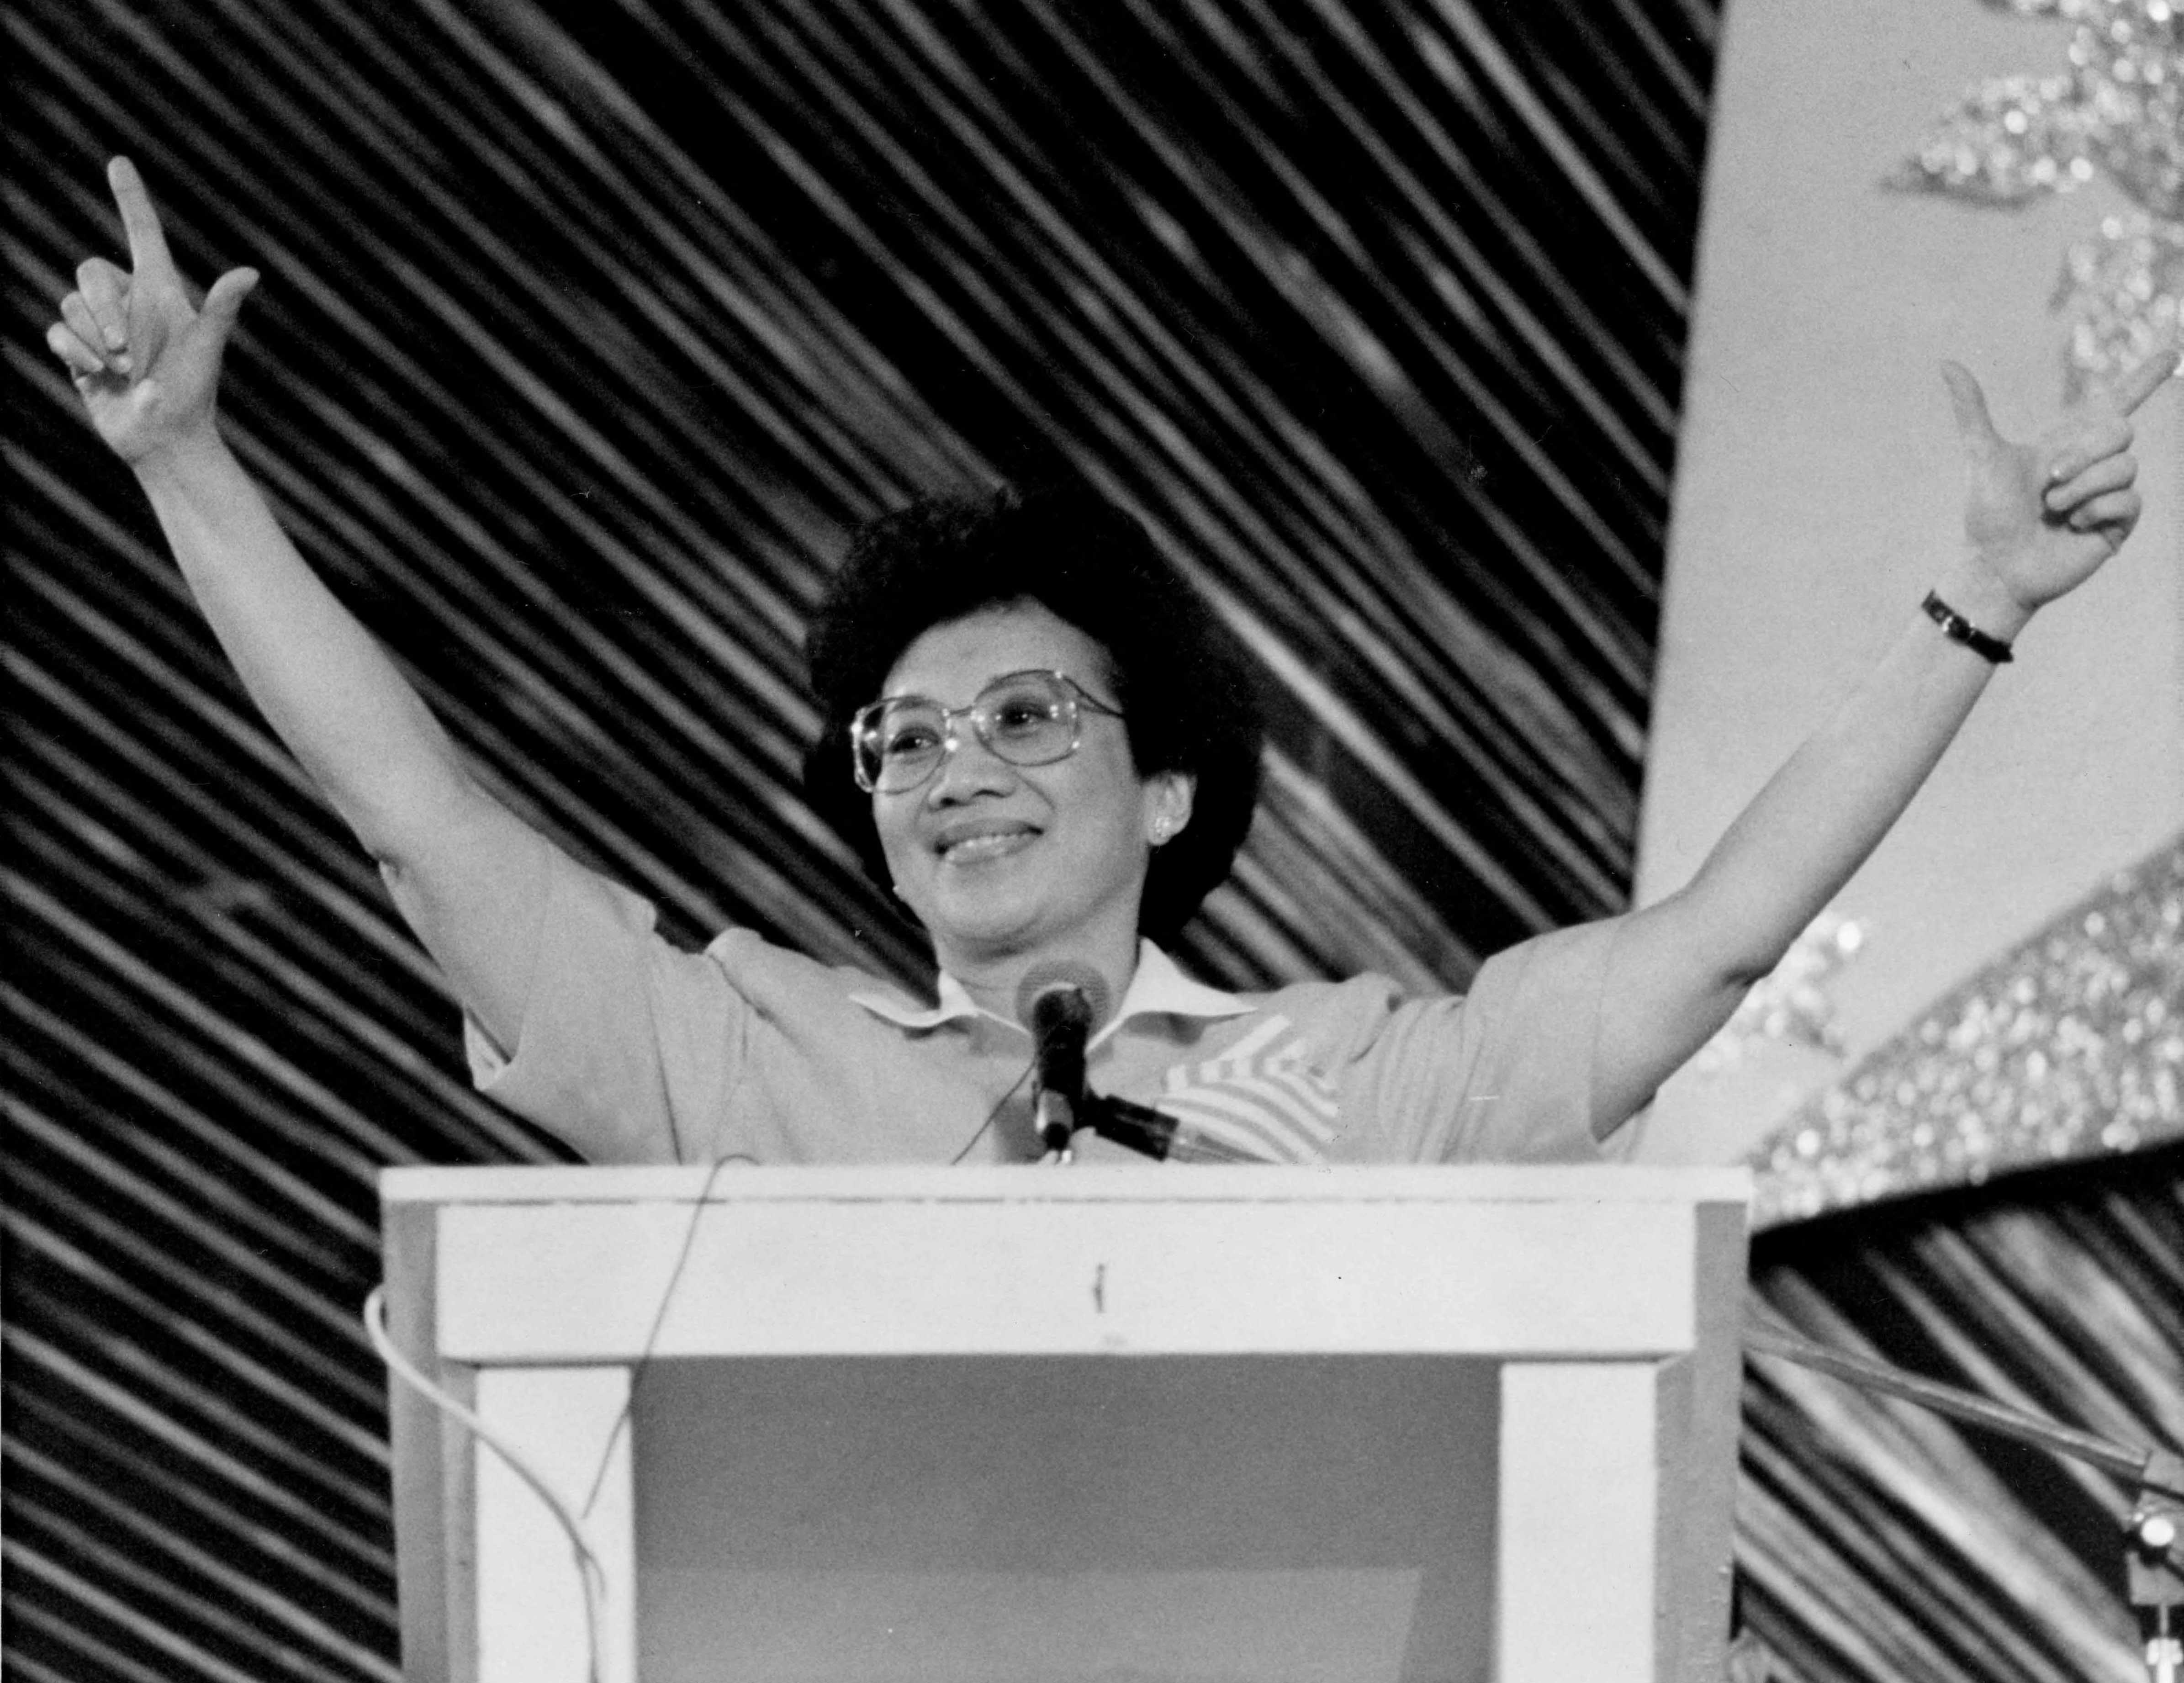 Corazon Aquino, who led ouster of Marcos, dies | The Spokesman-Review